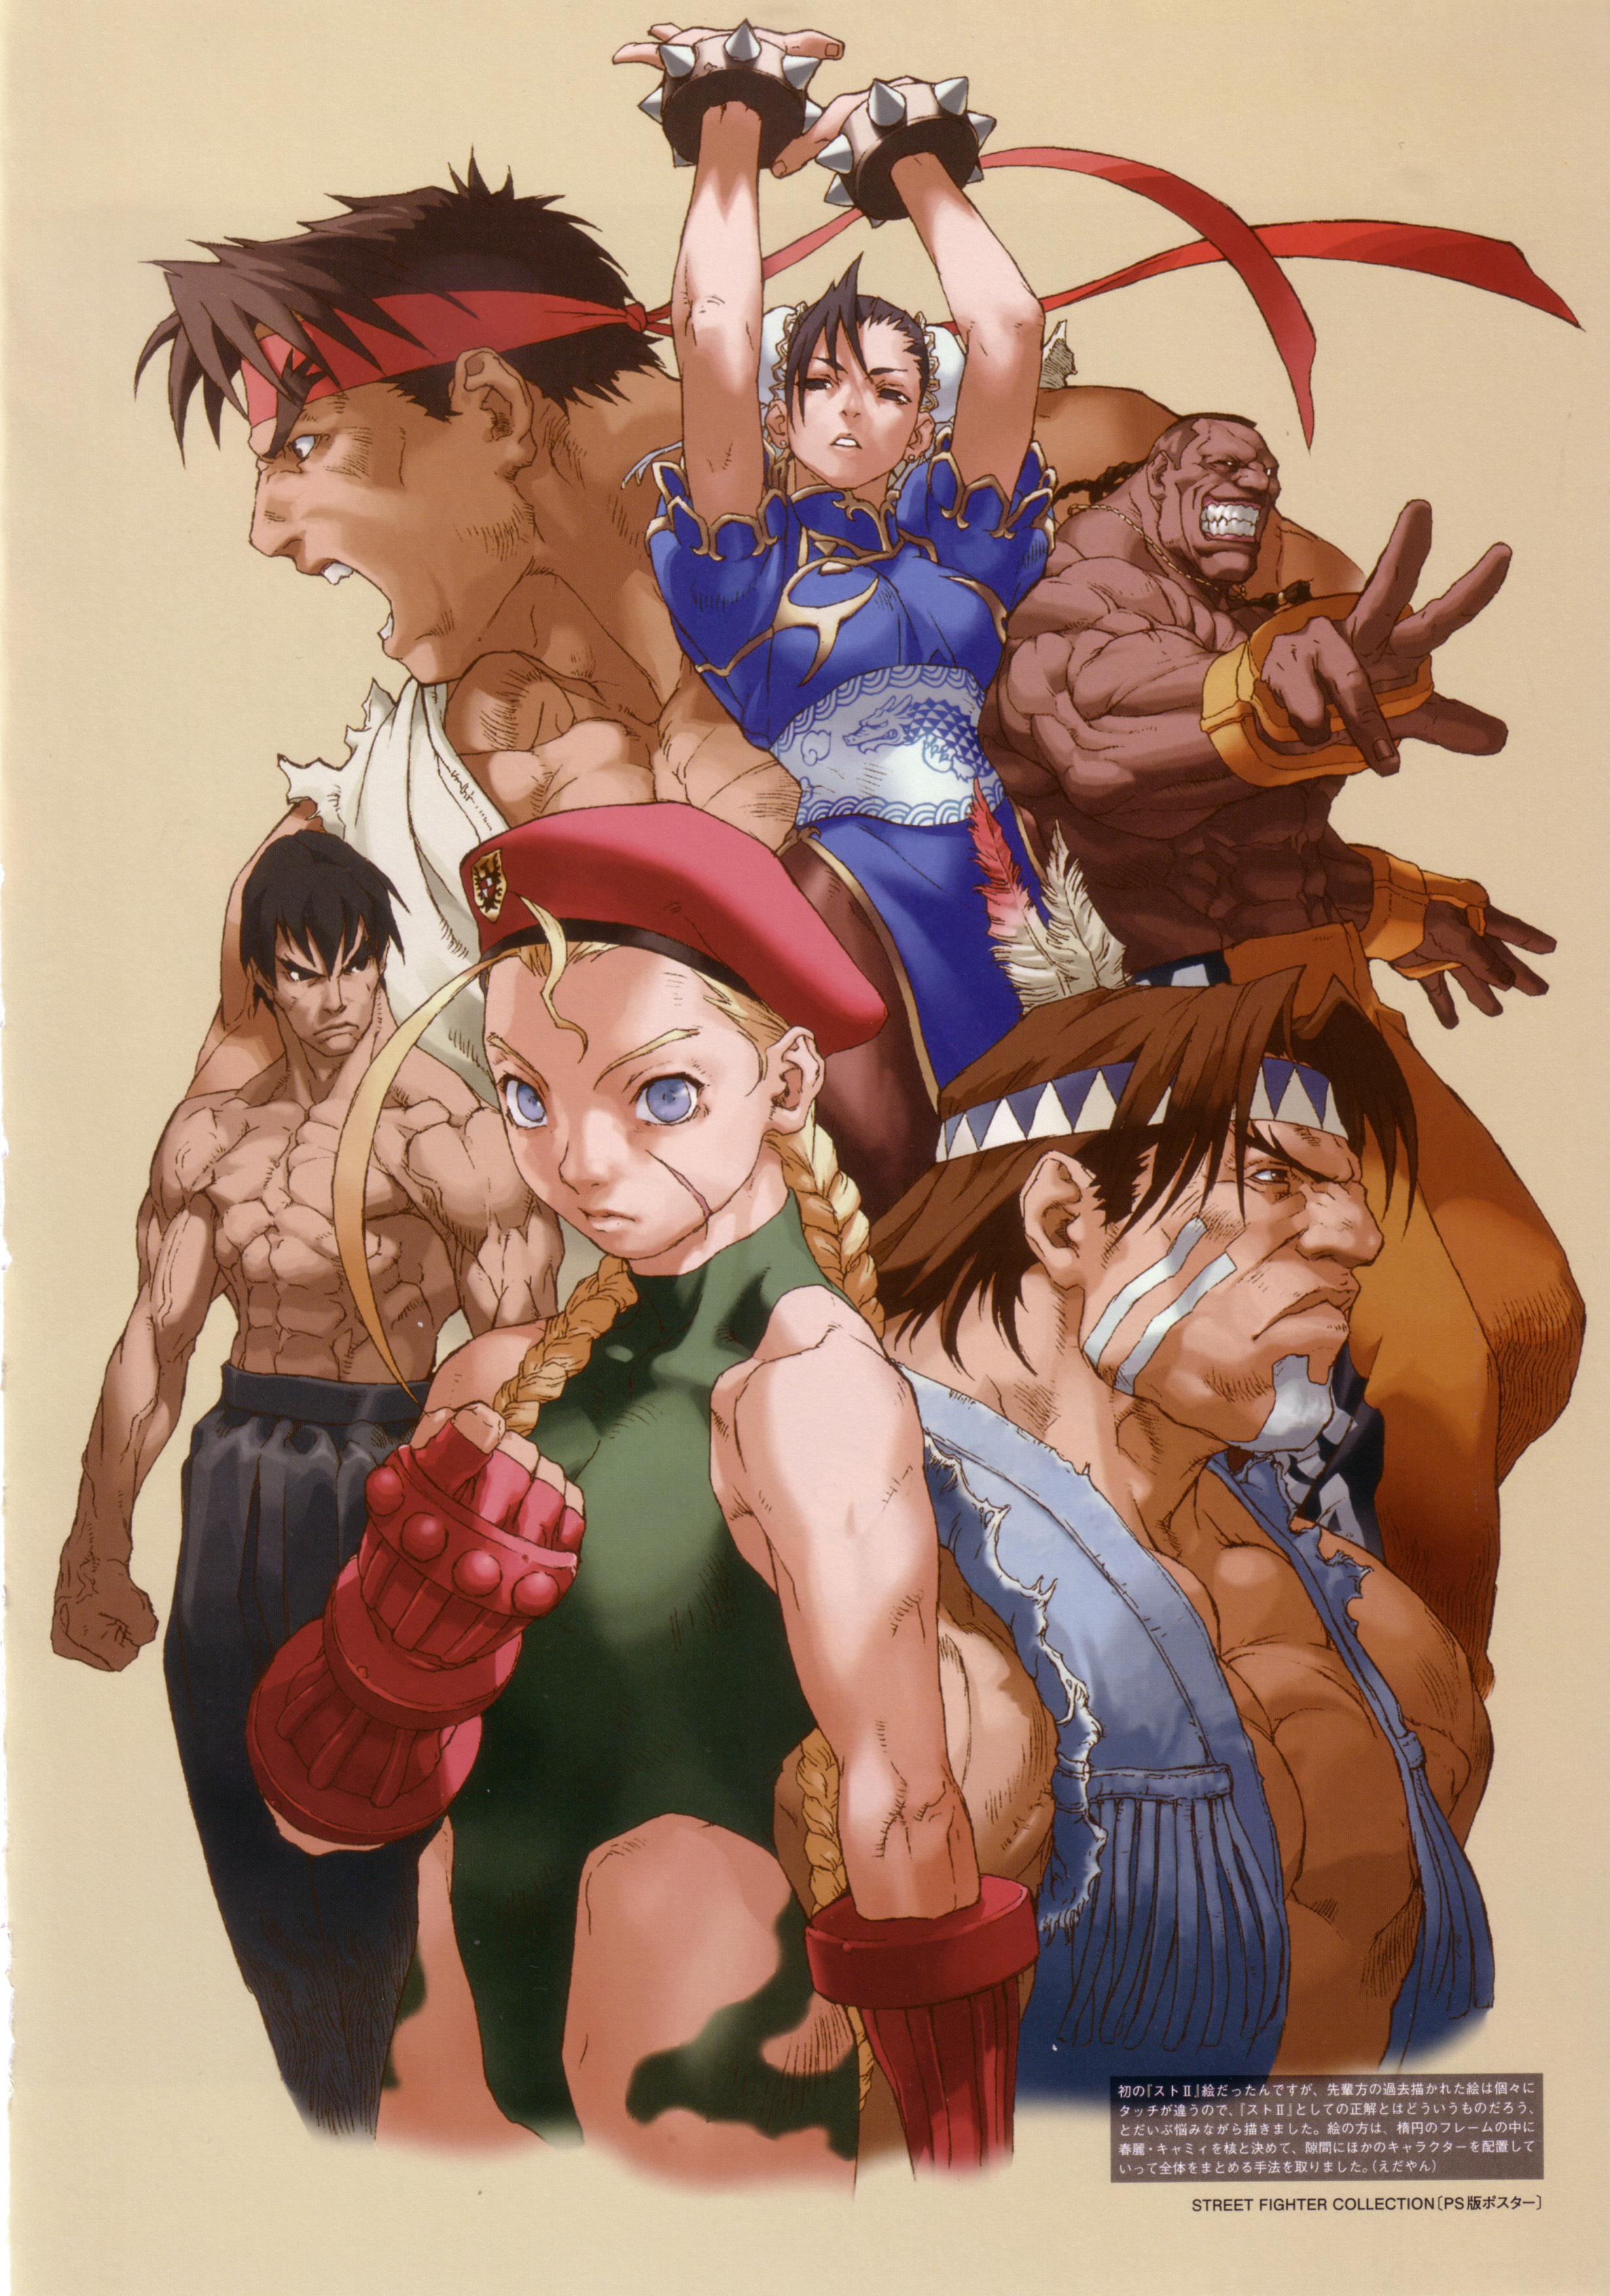 Street Fighter Wallpaper on Street Fighter Hd Wallpaper   General   840227